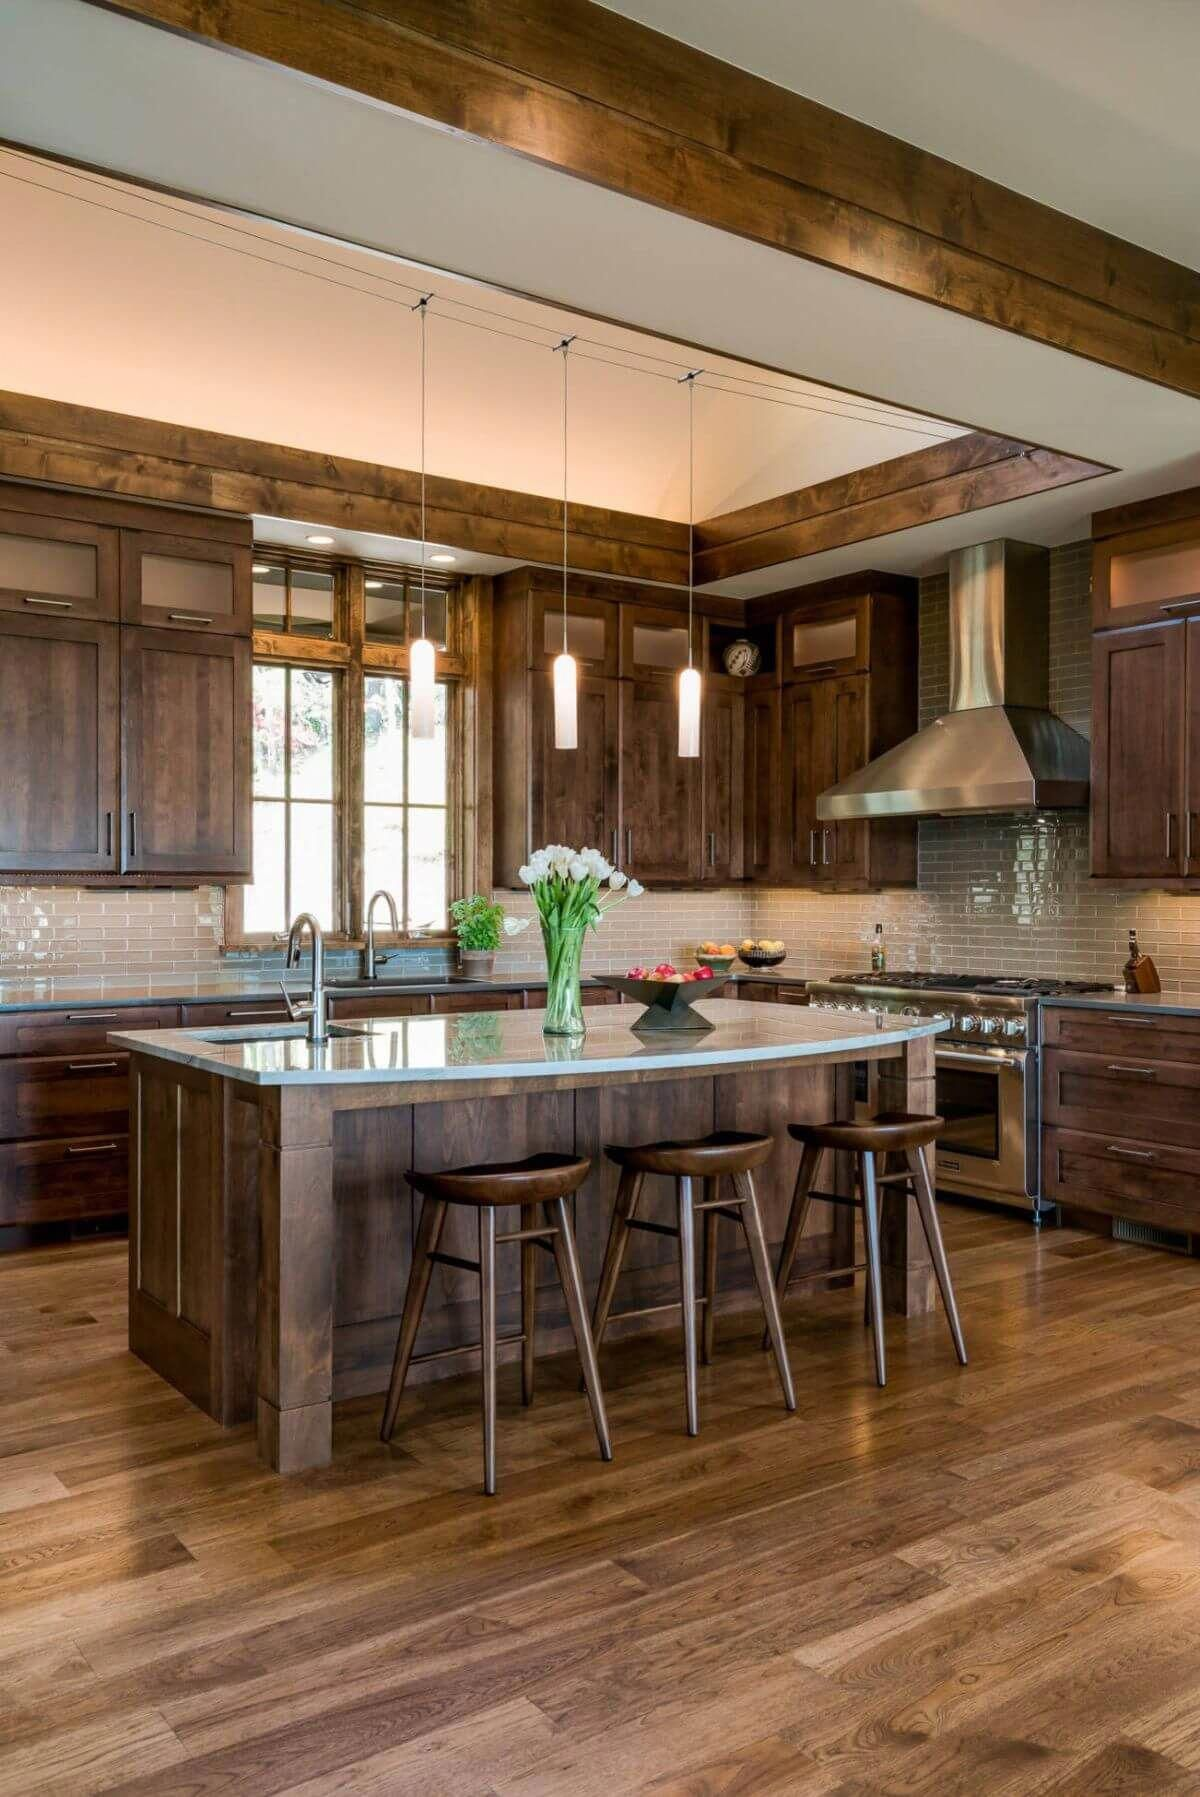 31 Most Favorite Ideas Of Reclaimed Barn Wood Kitchen Islands Kitchencabinets Tuscan Kitchen Rustic Kitchen Cabinets Kitchen Design